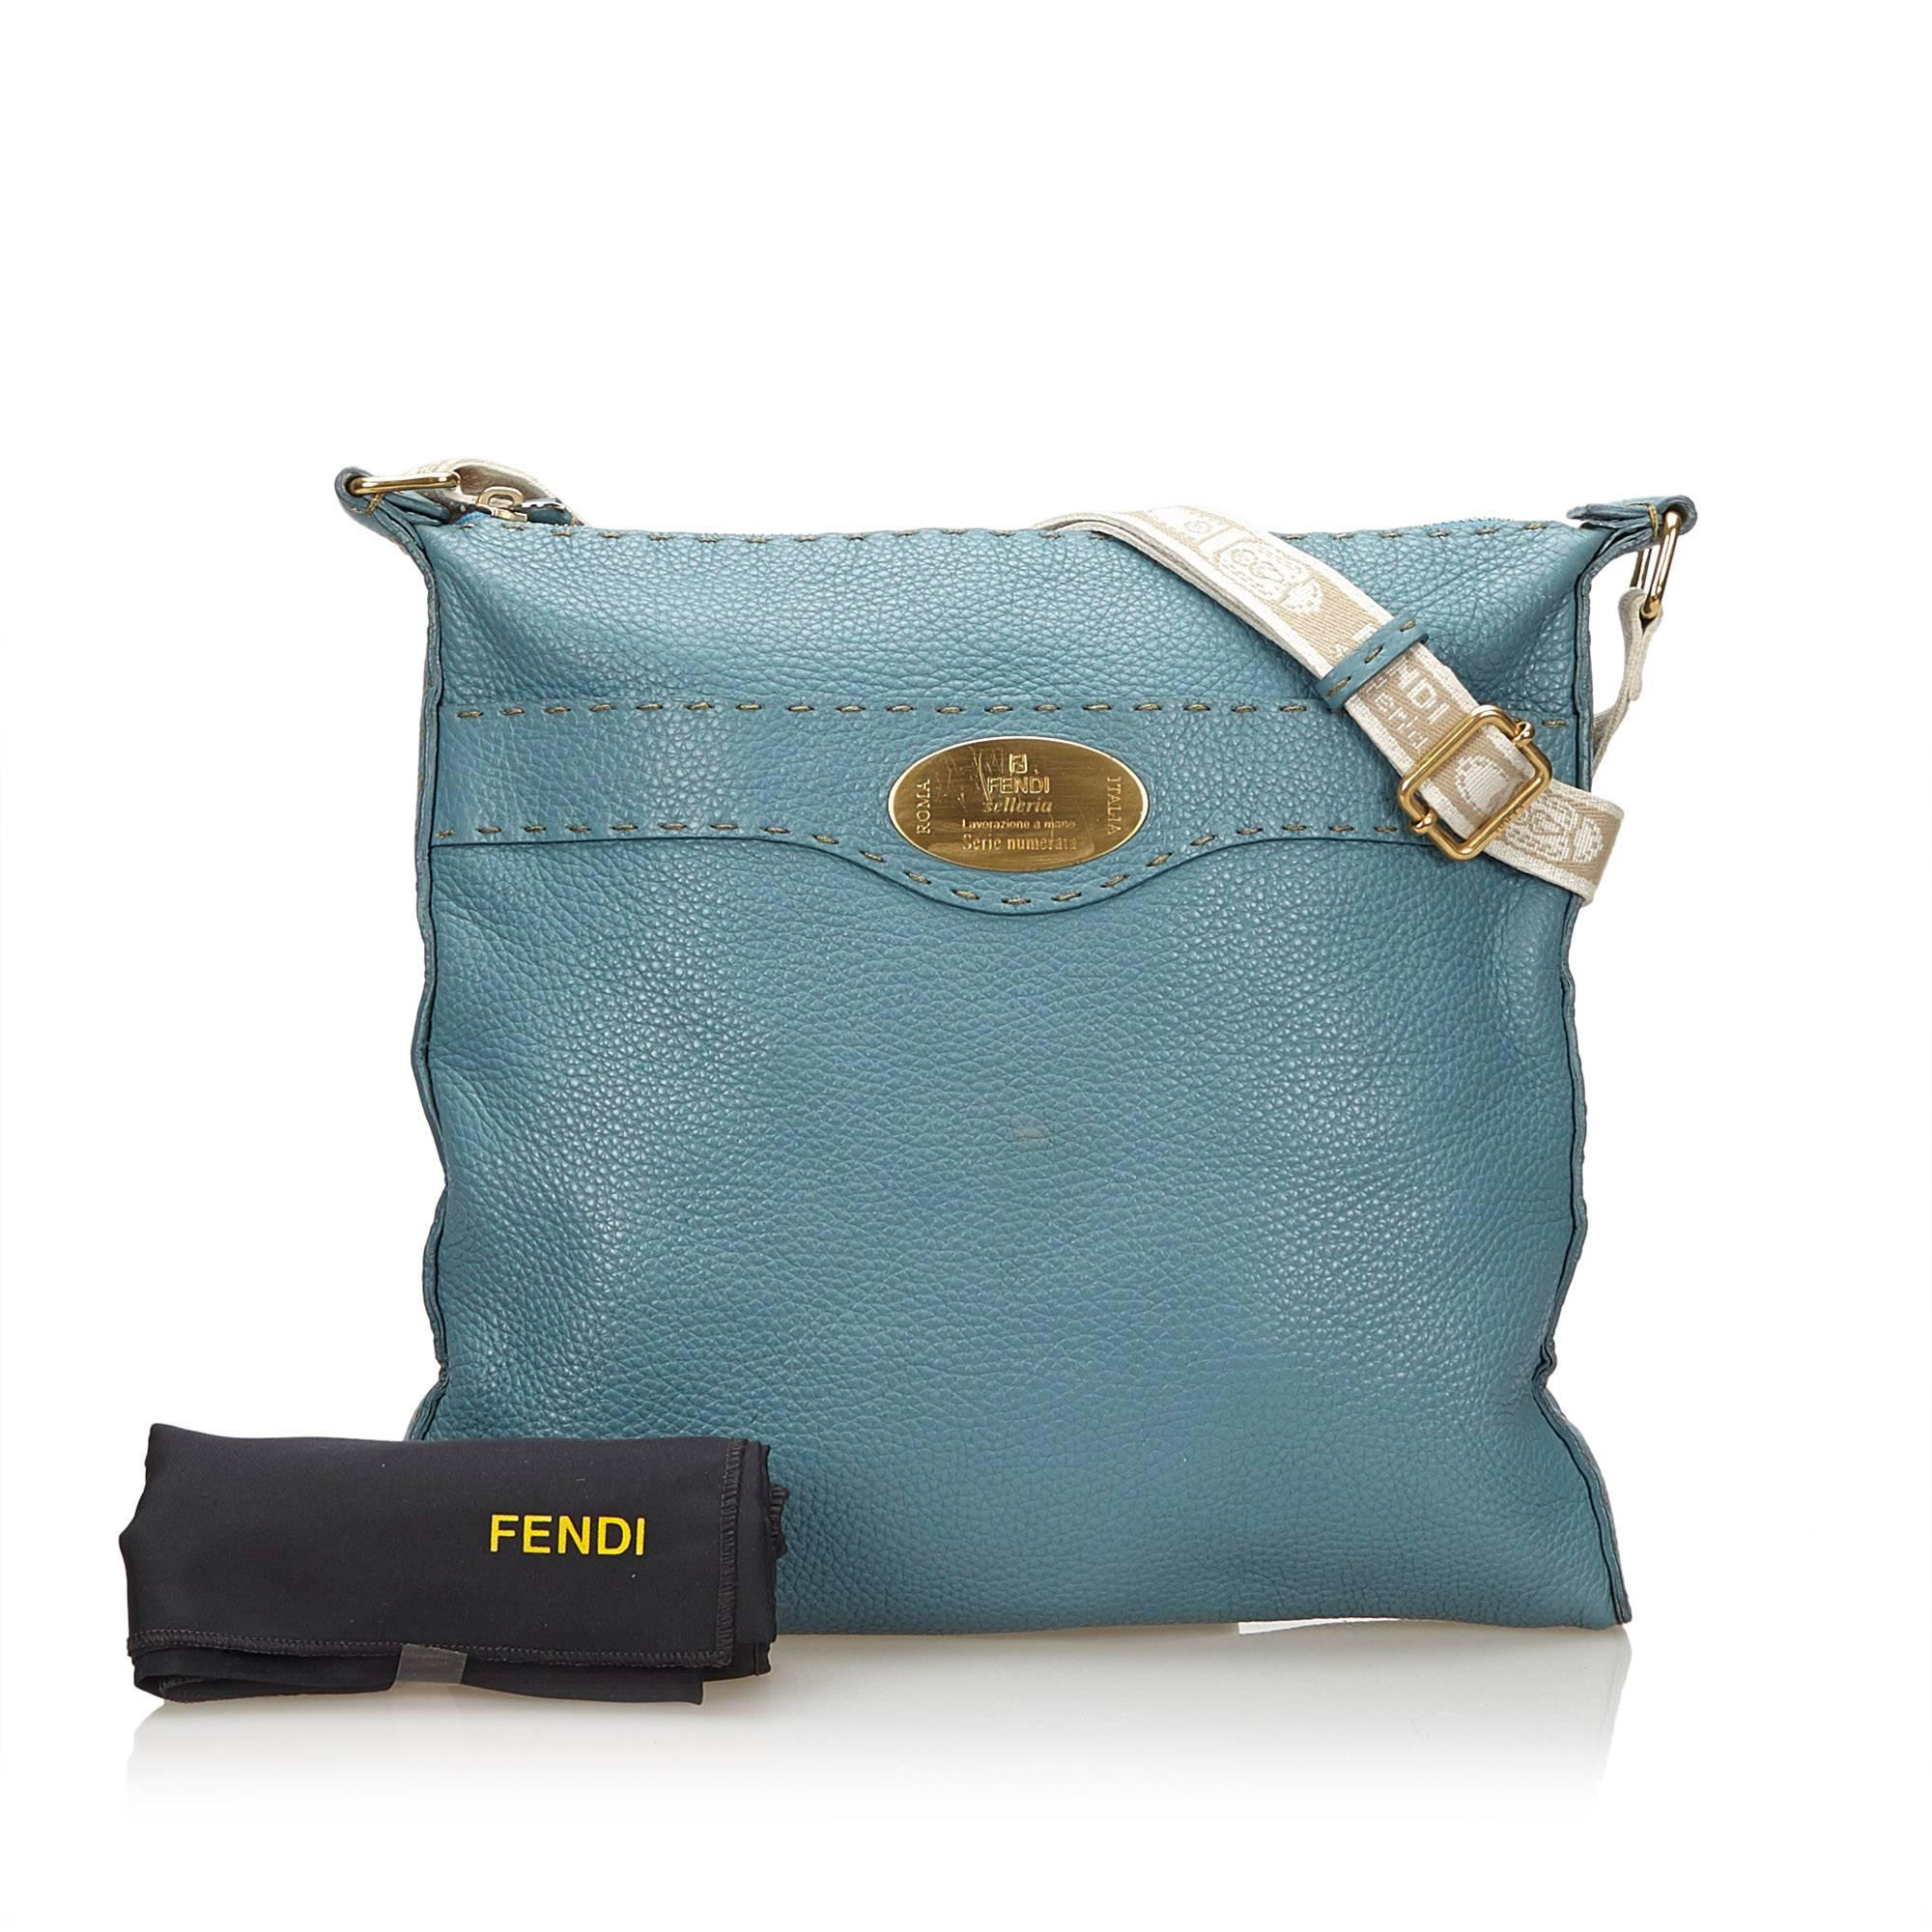 2a2914f219 ... coupon code for fendi blue selleria crossbody bag for sale 5 2fd9c  4fb0f ...